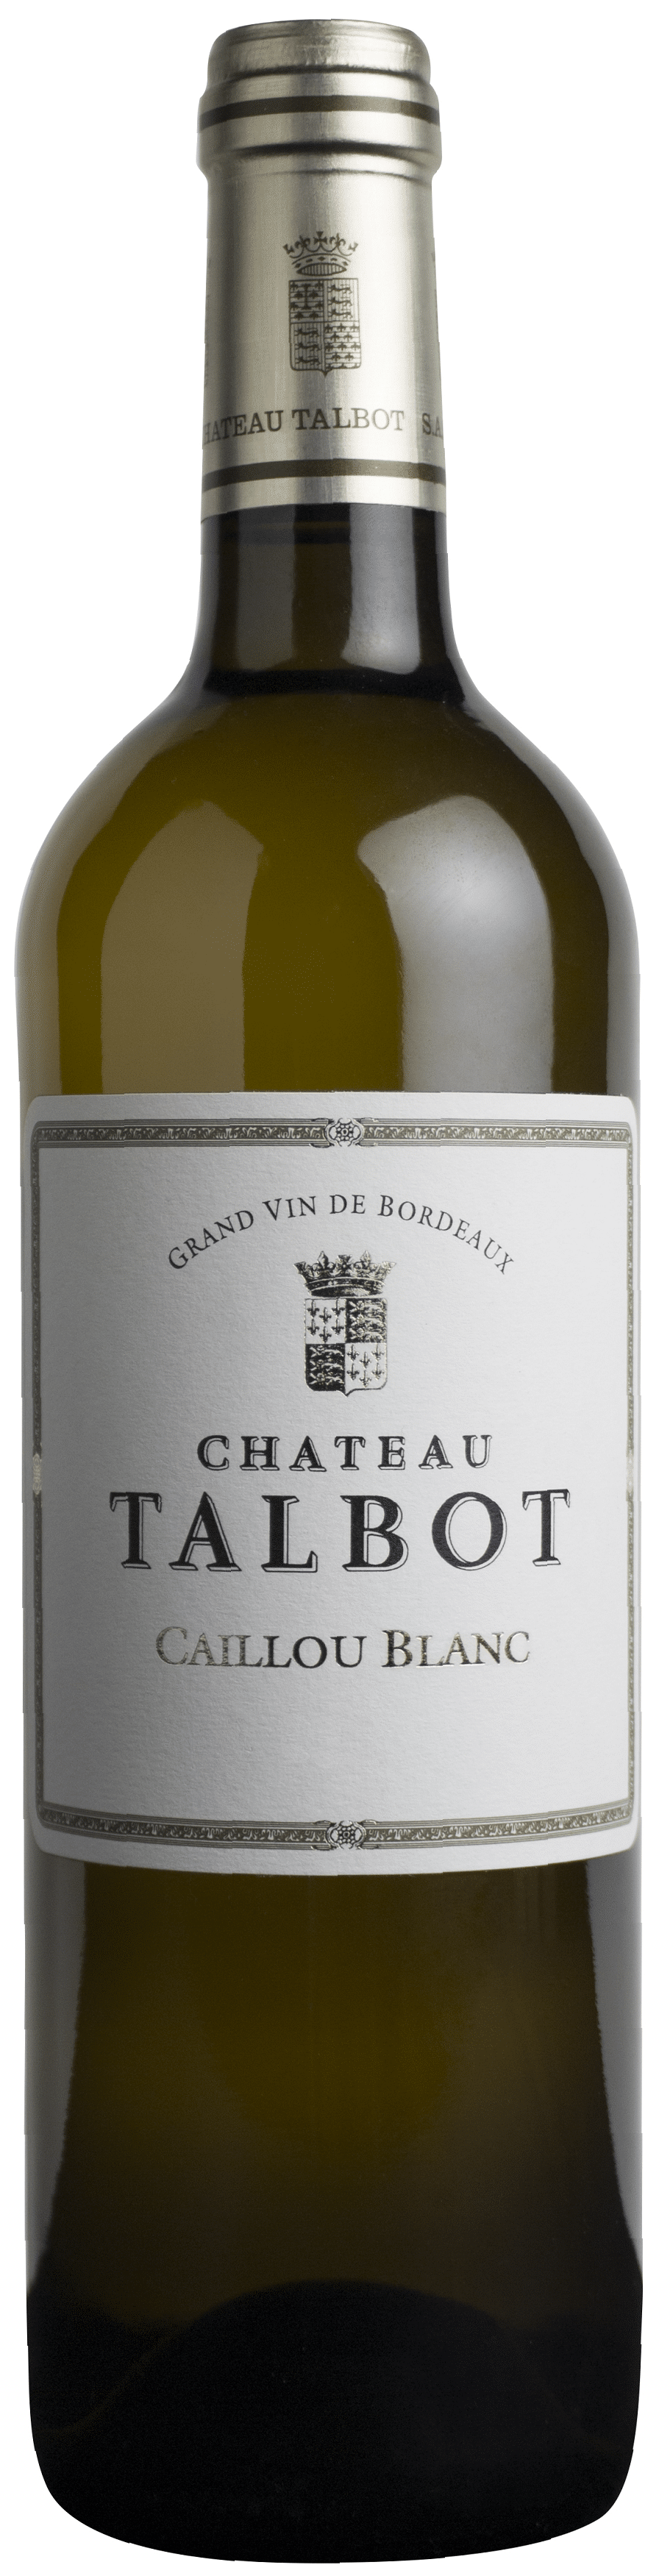 Chateau Talbot, Caillou Blanc, 2010